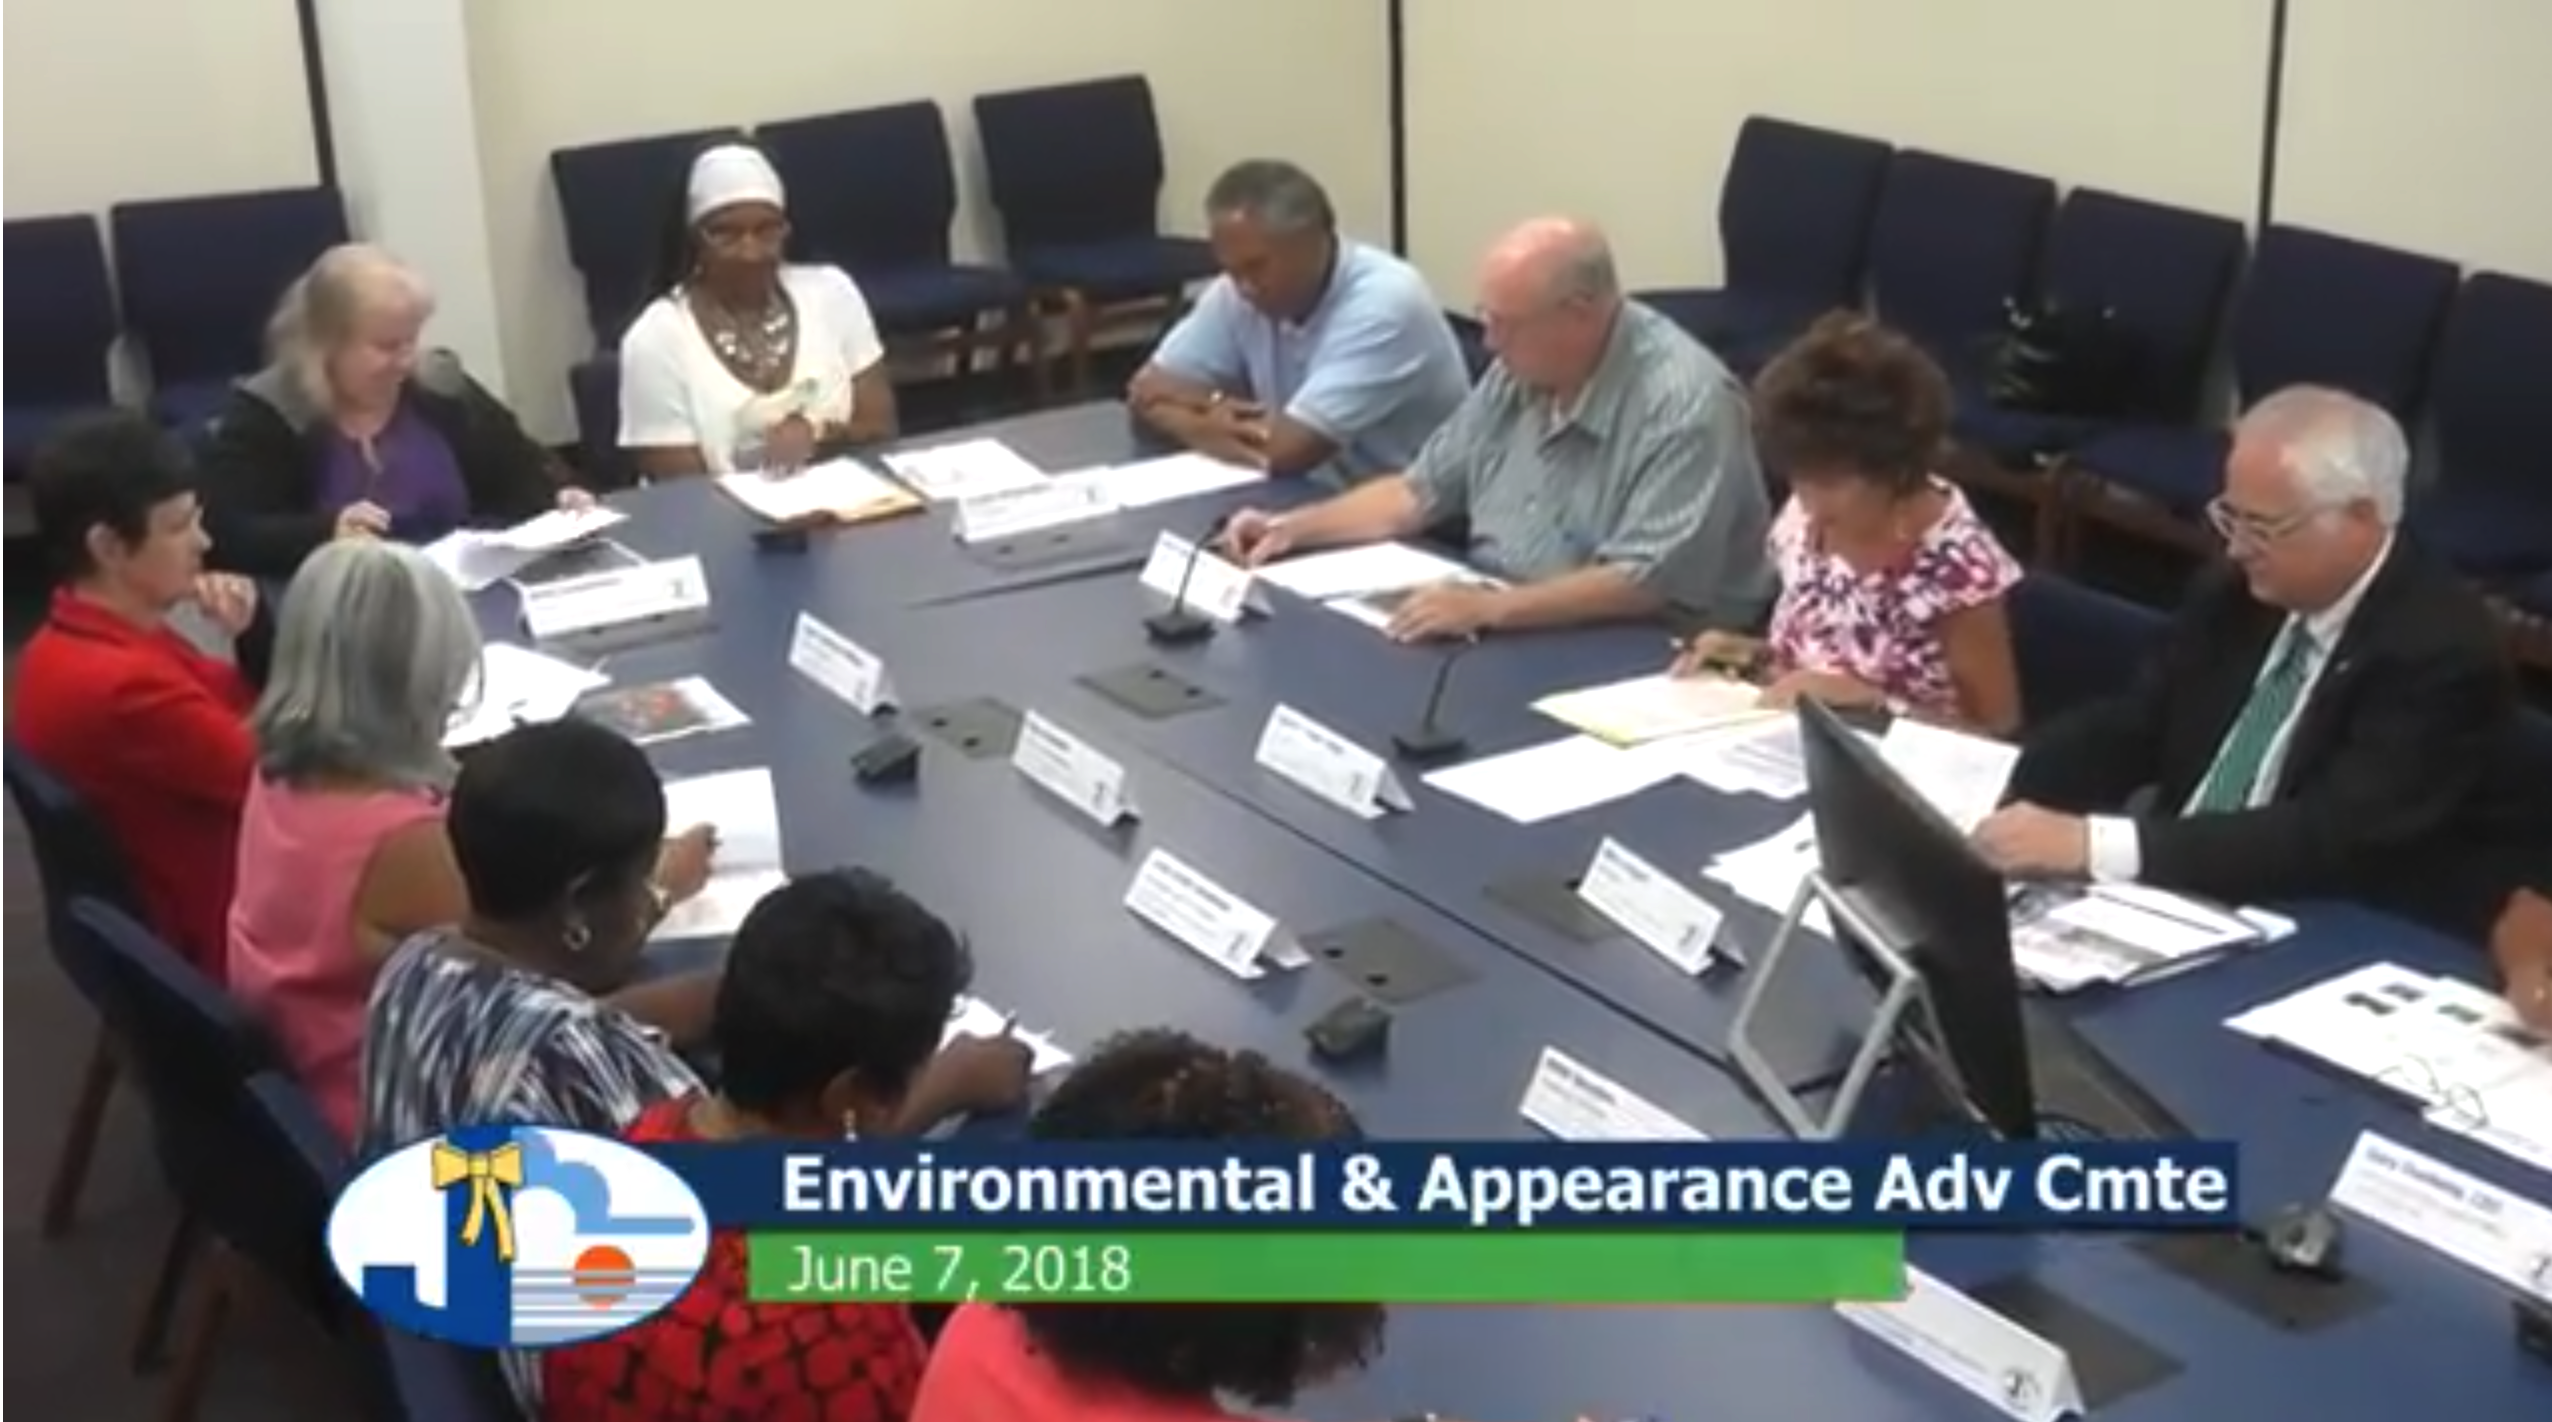 Environmental and Appearance Advisory Committee